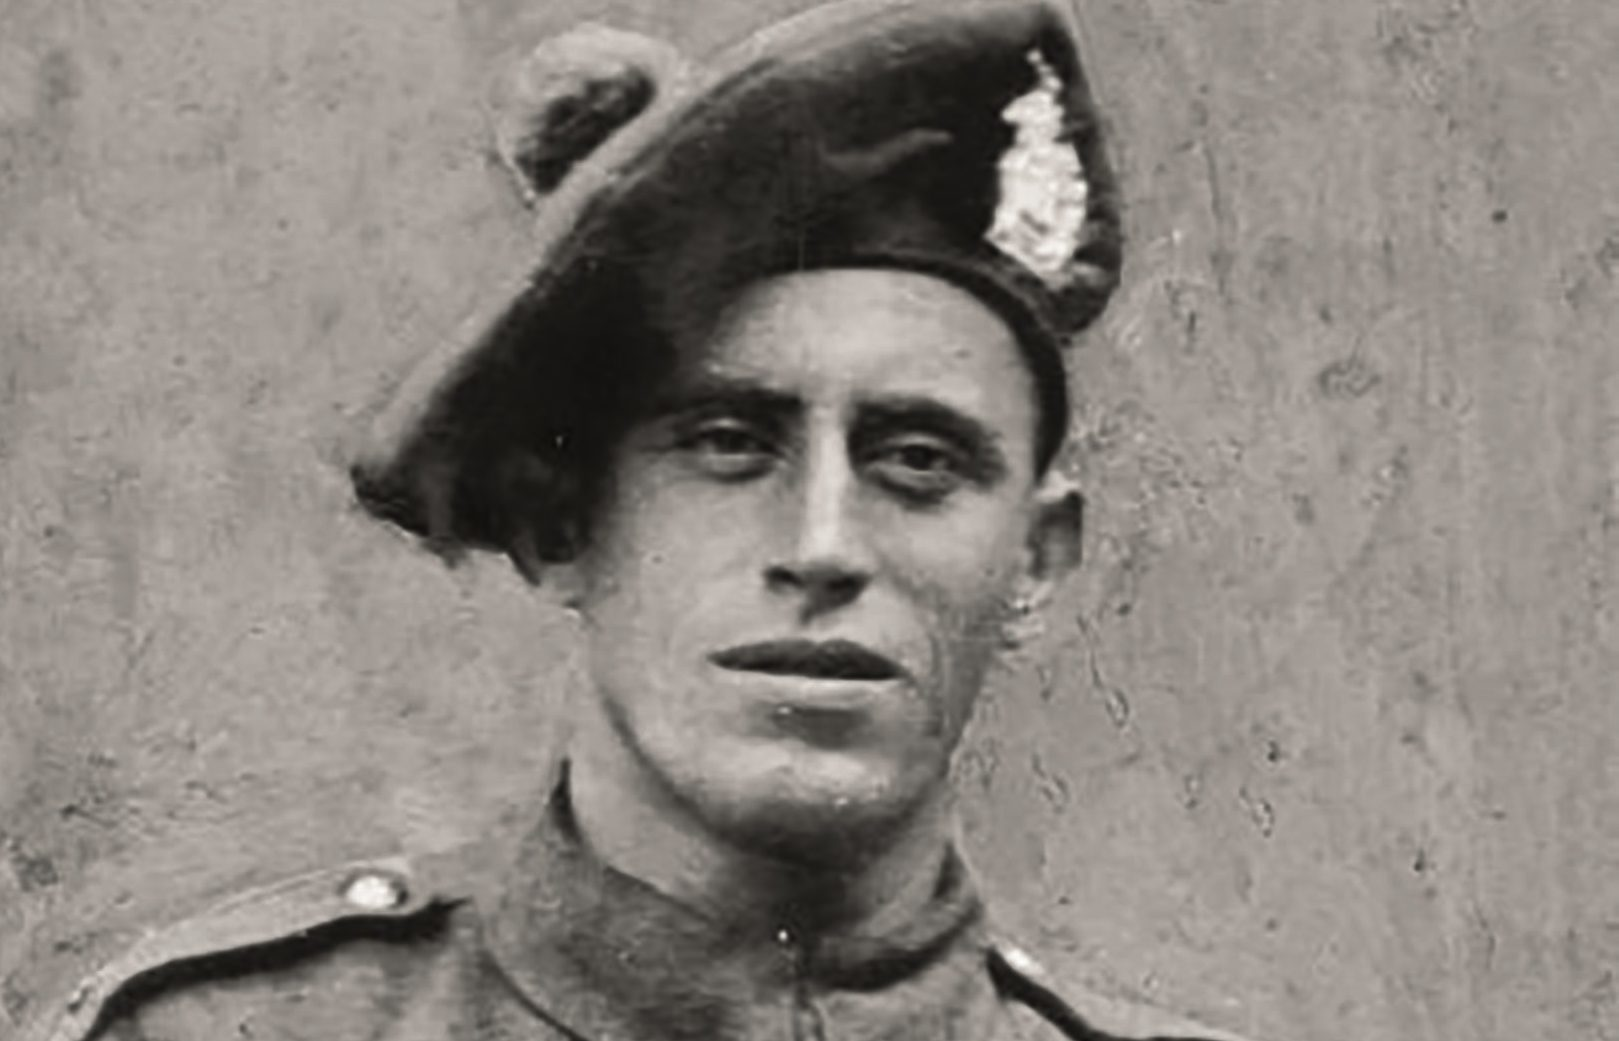 A wartime picture of Sgt Louis McGuffie VC (The King's Own Scottish Borderers Association)